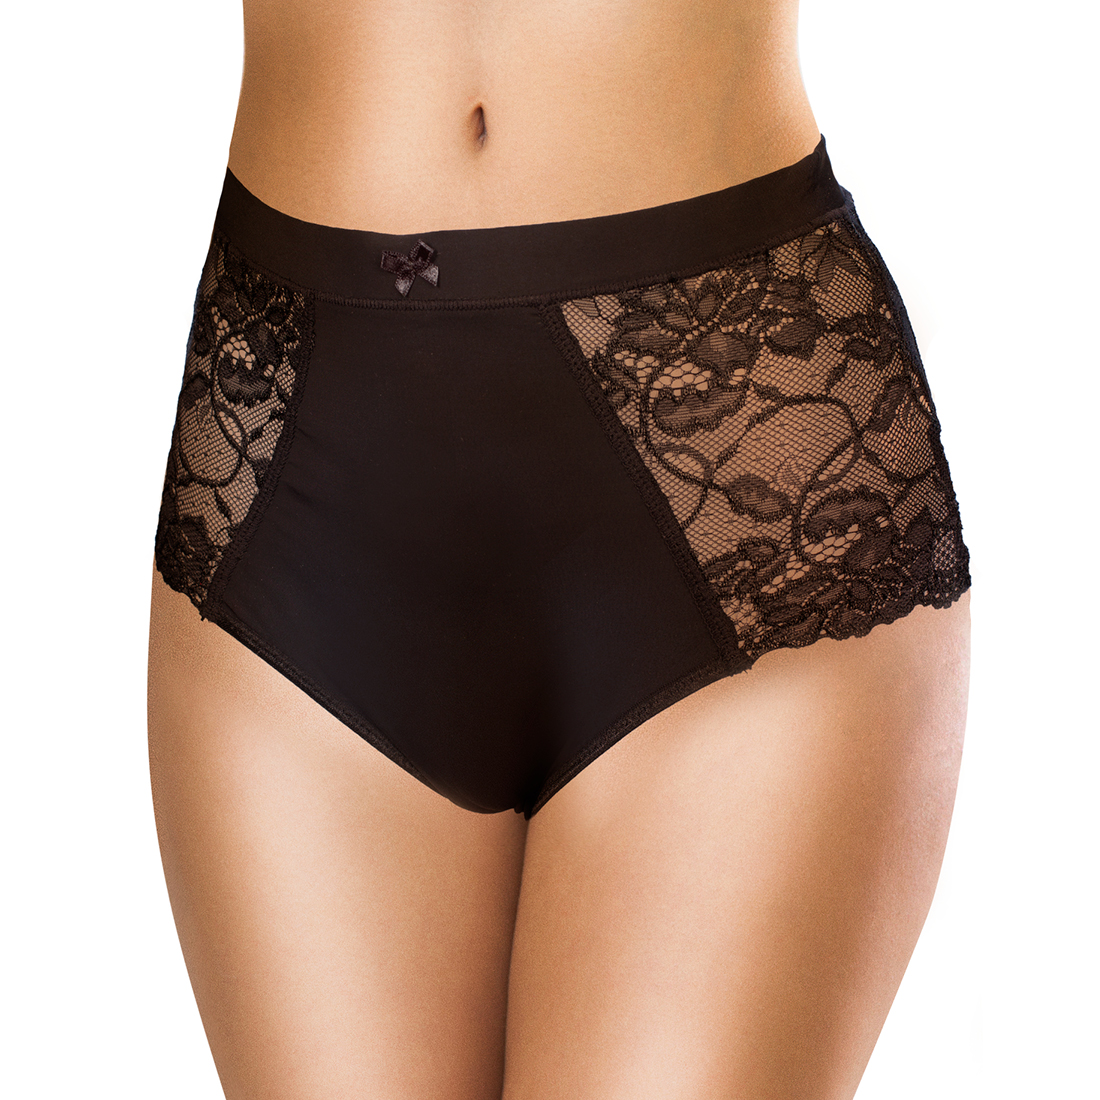 An image of Pretty Clever Pants 2pk (Black Lace)